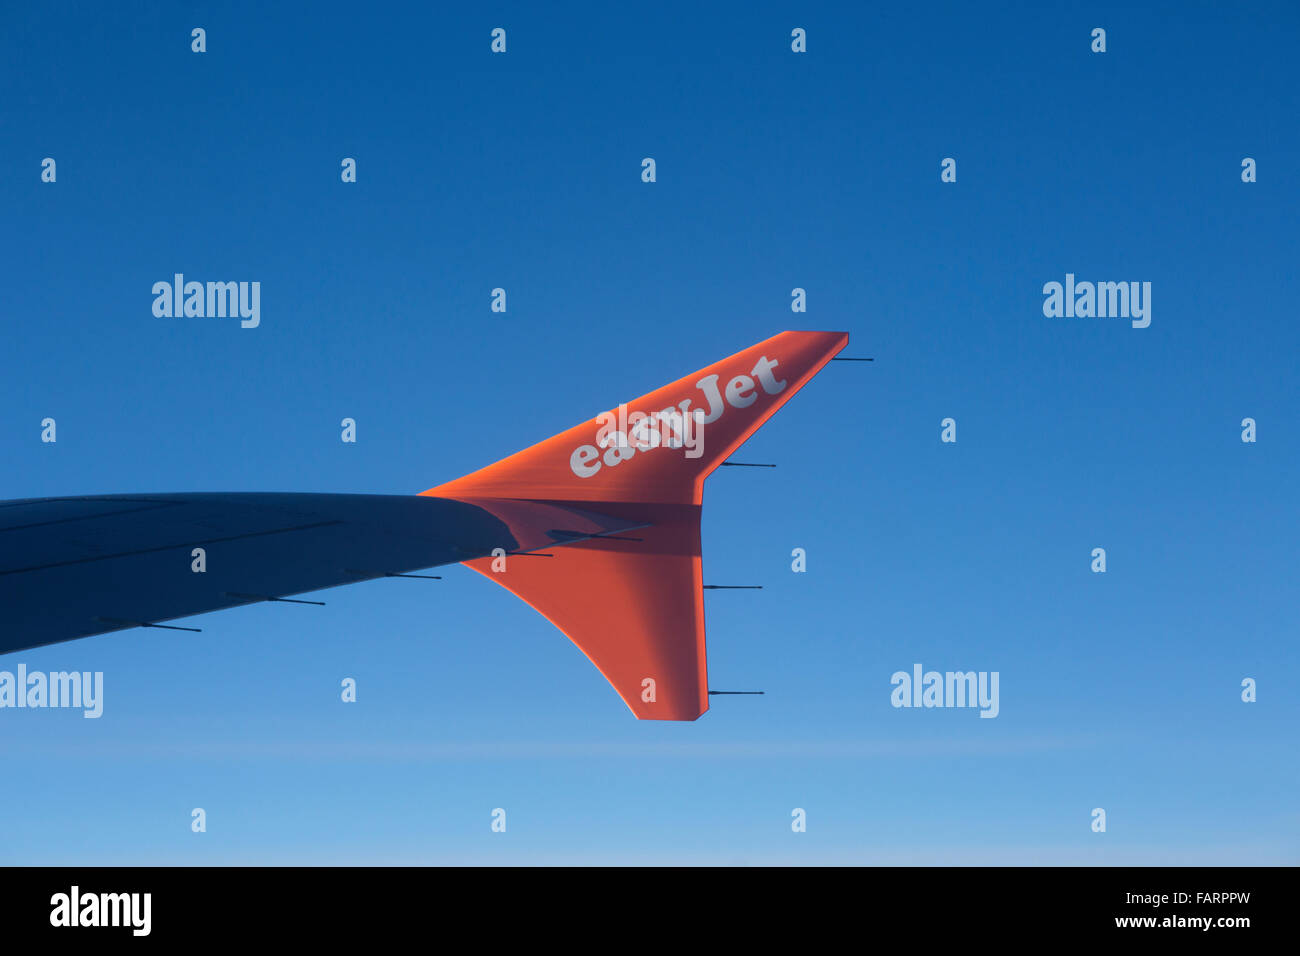 easyJet low-cost airline - Stock Image